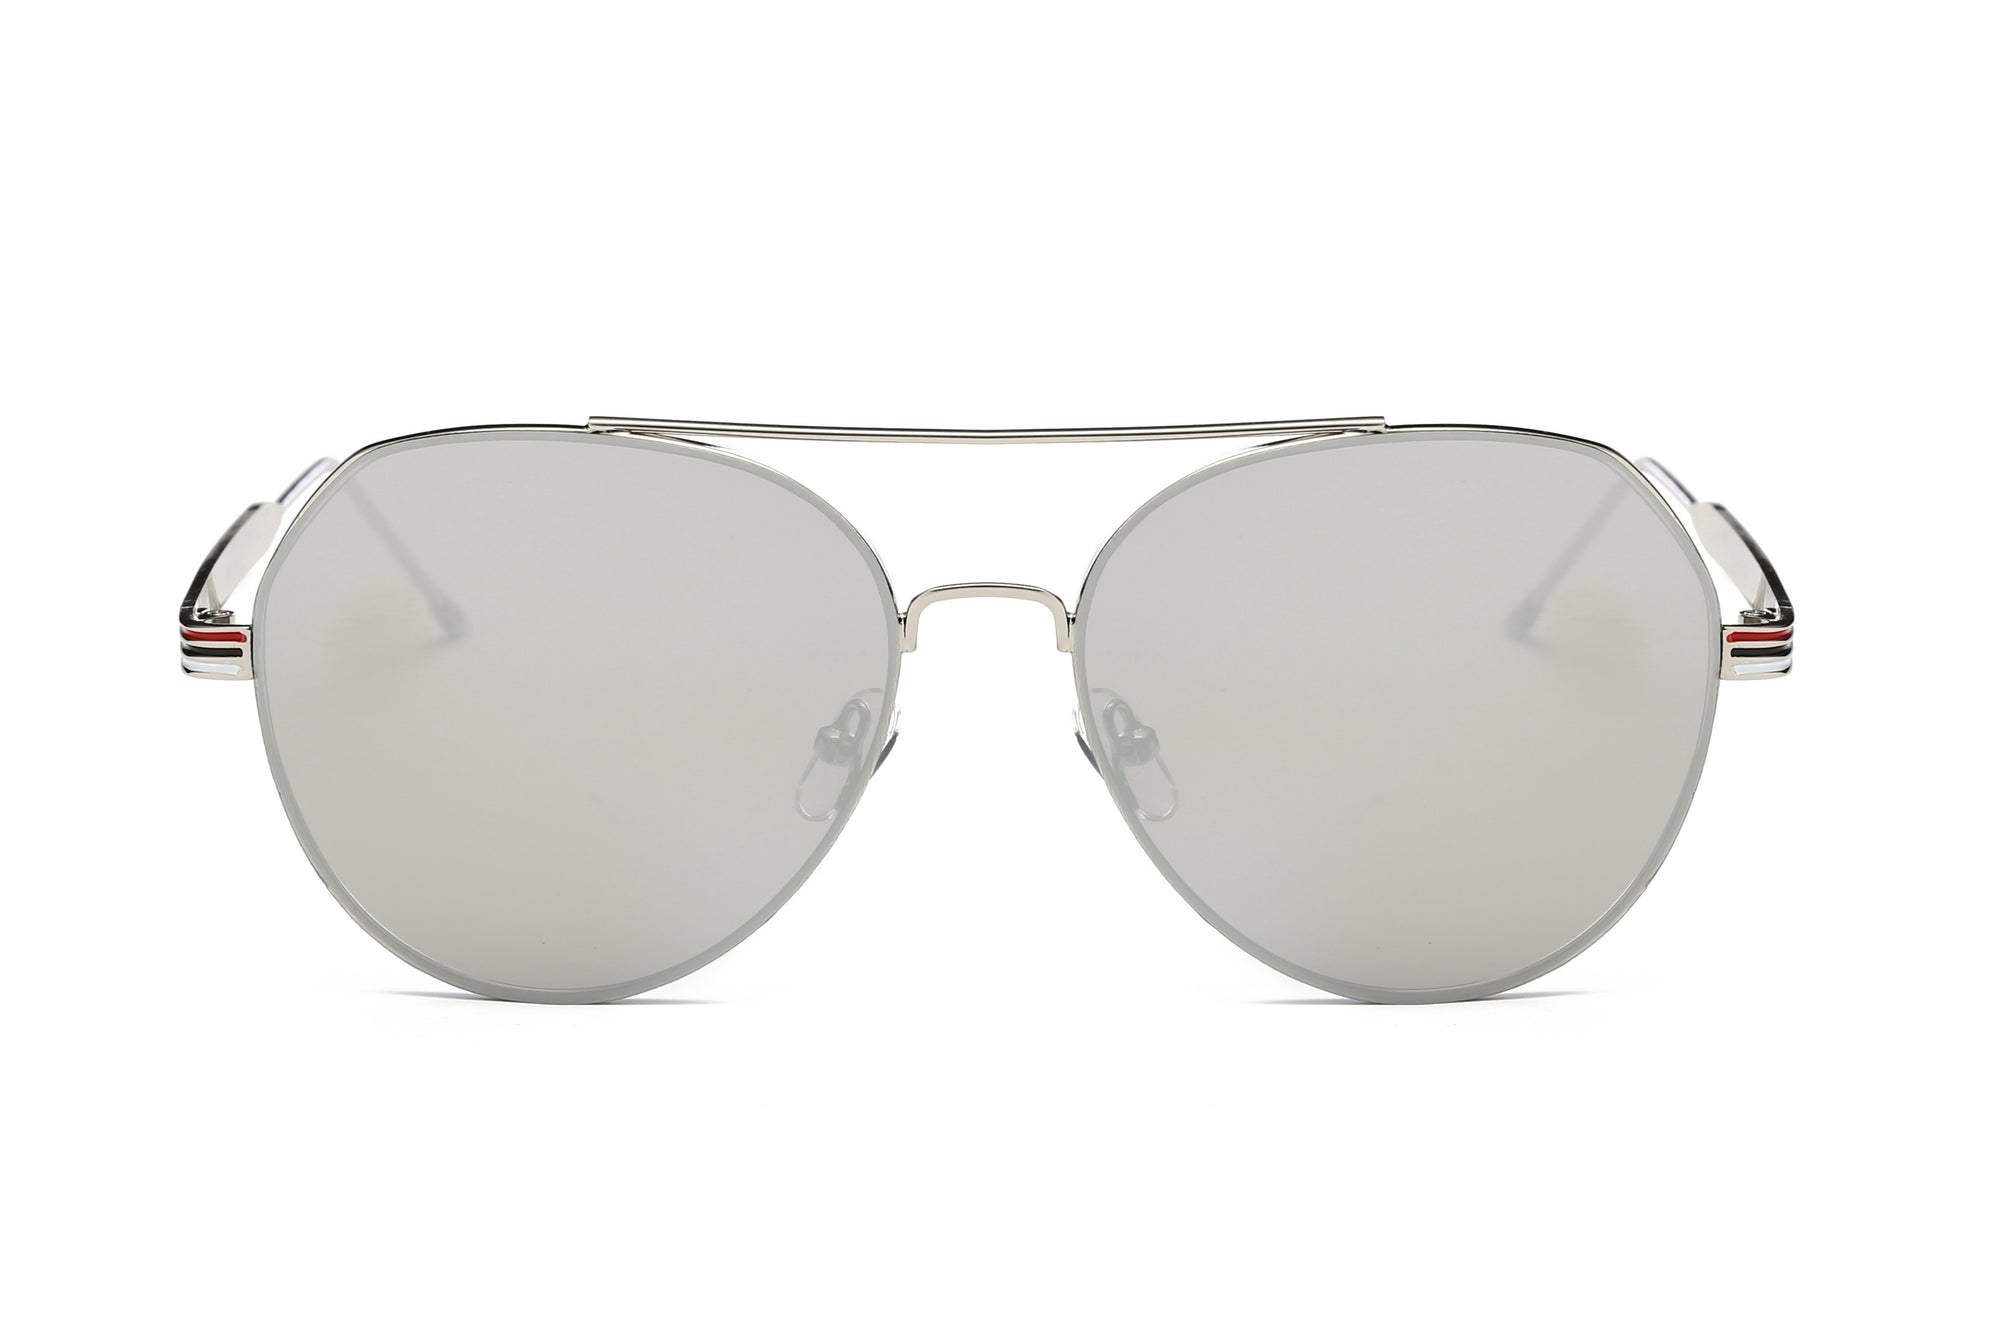 S2006 - Modern Teardrop Aviator Flat Mirrored Lens Sunglasses - Wholesale Sunglasses and glasses